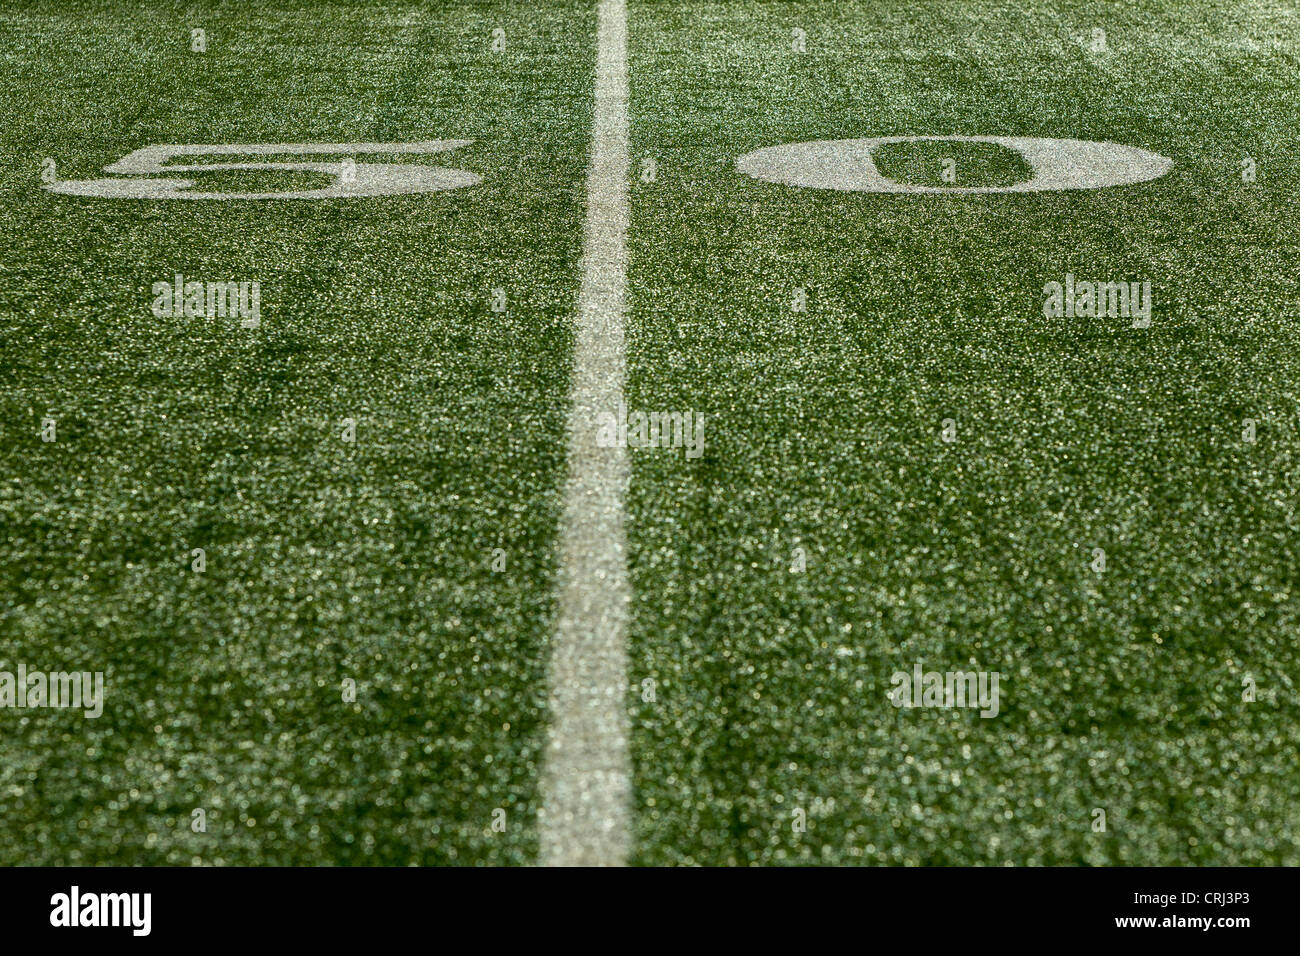 50 yard line marker in American Football stadium. - Stock Image